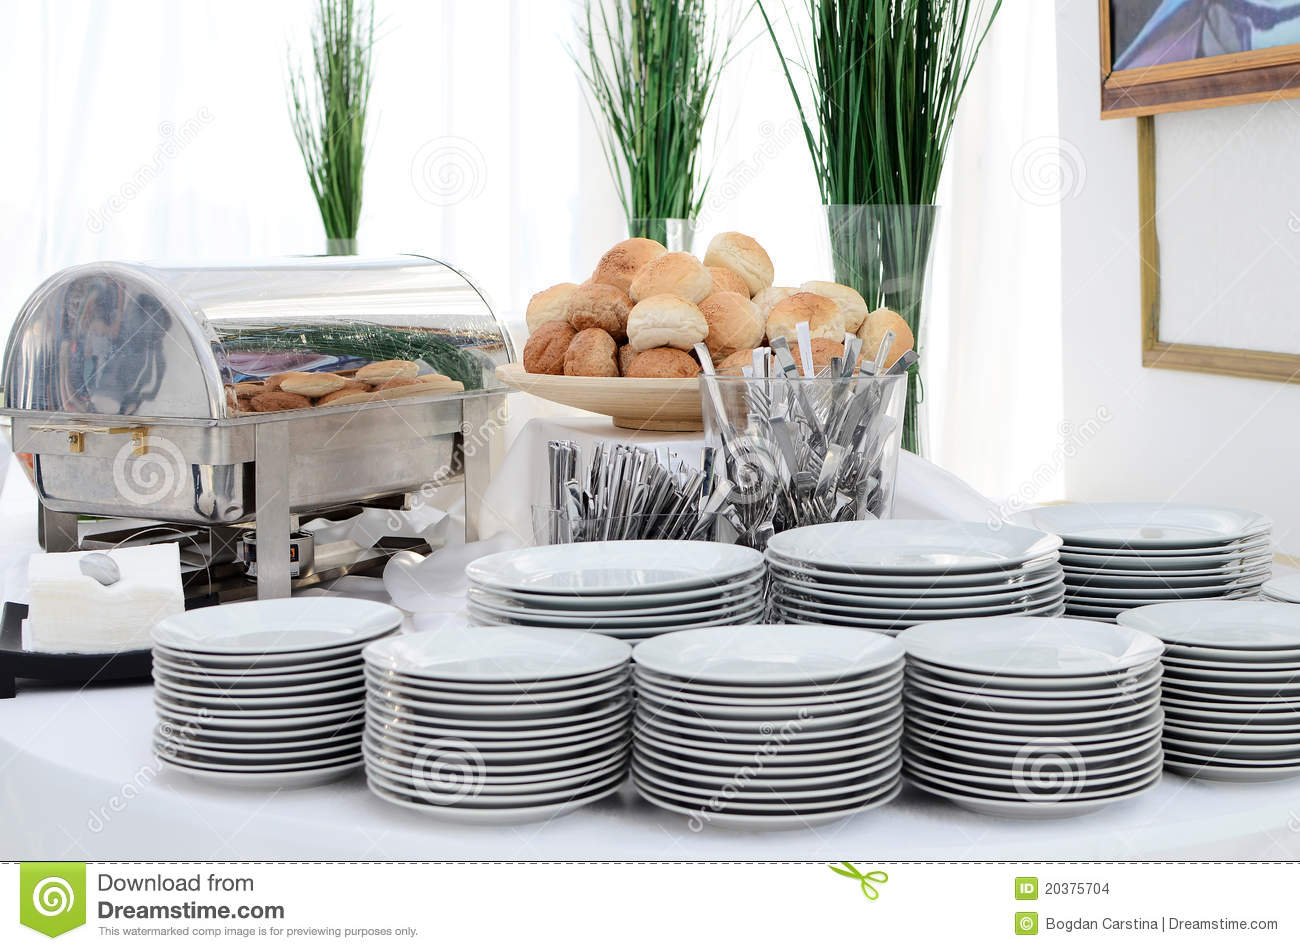 Buffet setting. Catering elegance. & Buffet setting stock photo. Image of catering elegance - 20375704